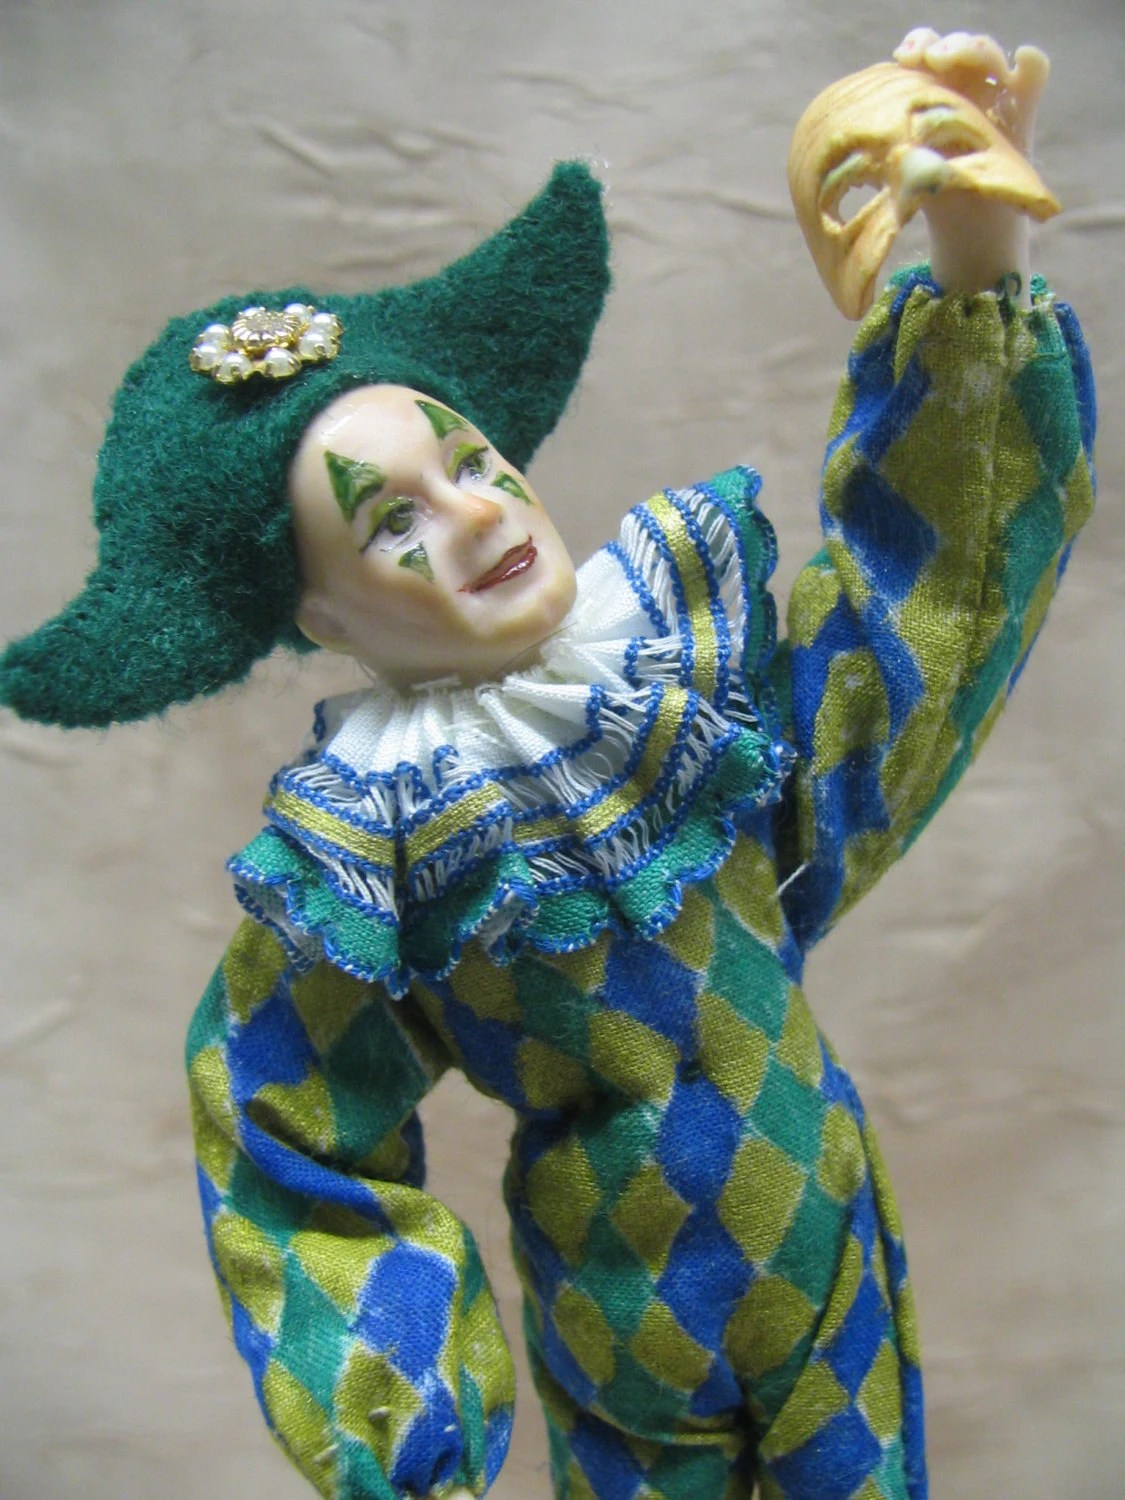 Harlequin from the Comedy d' Arte as a Miniature Porcelain Clown Doll sculpted by artist Kay Brooke - KaysStudio